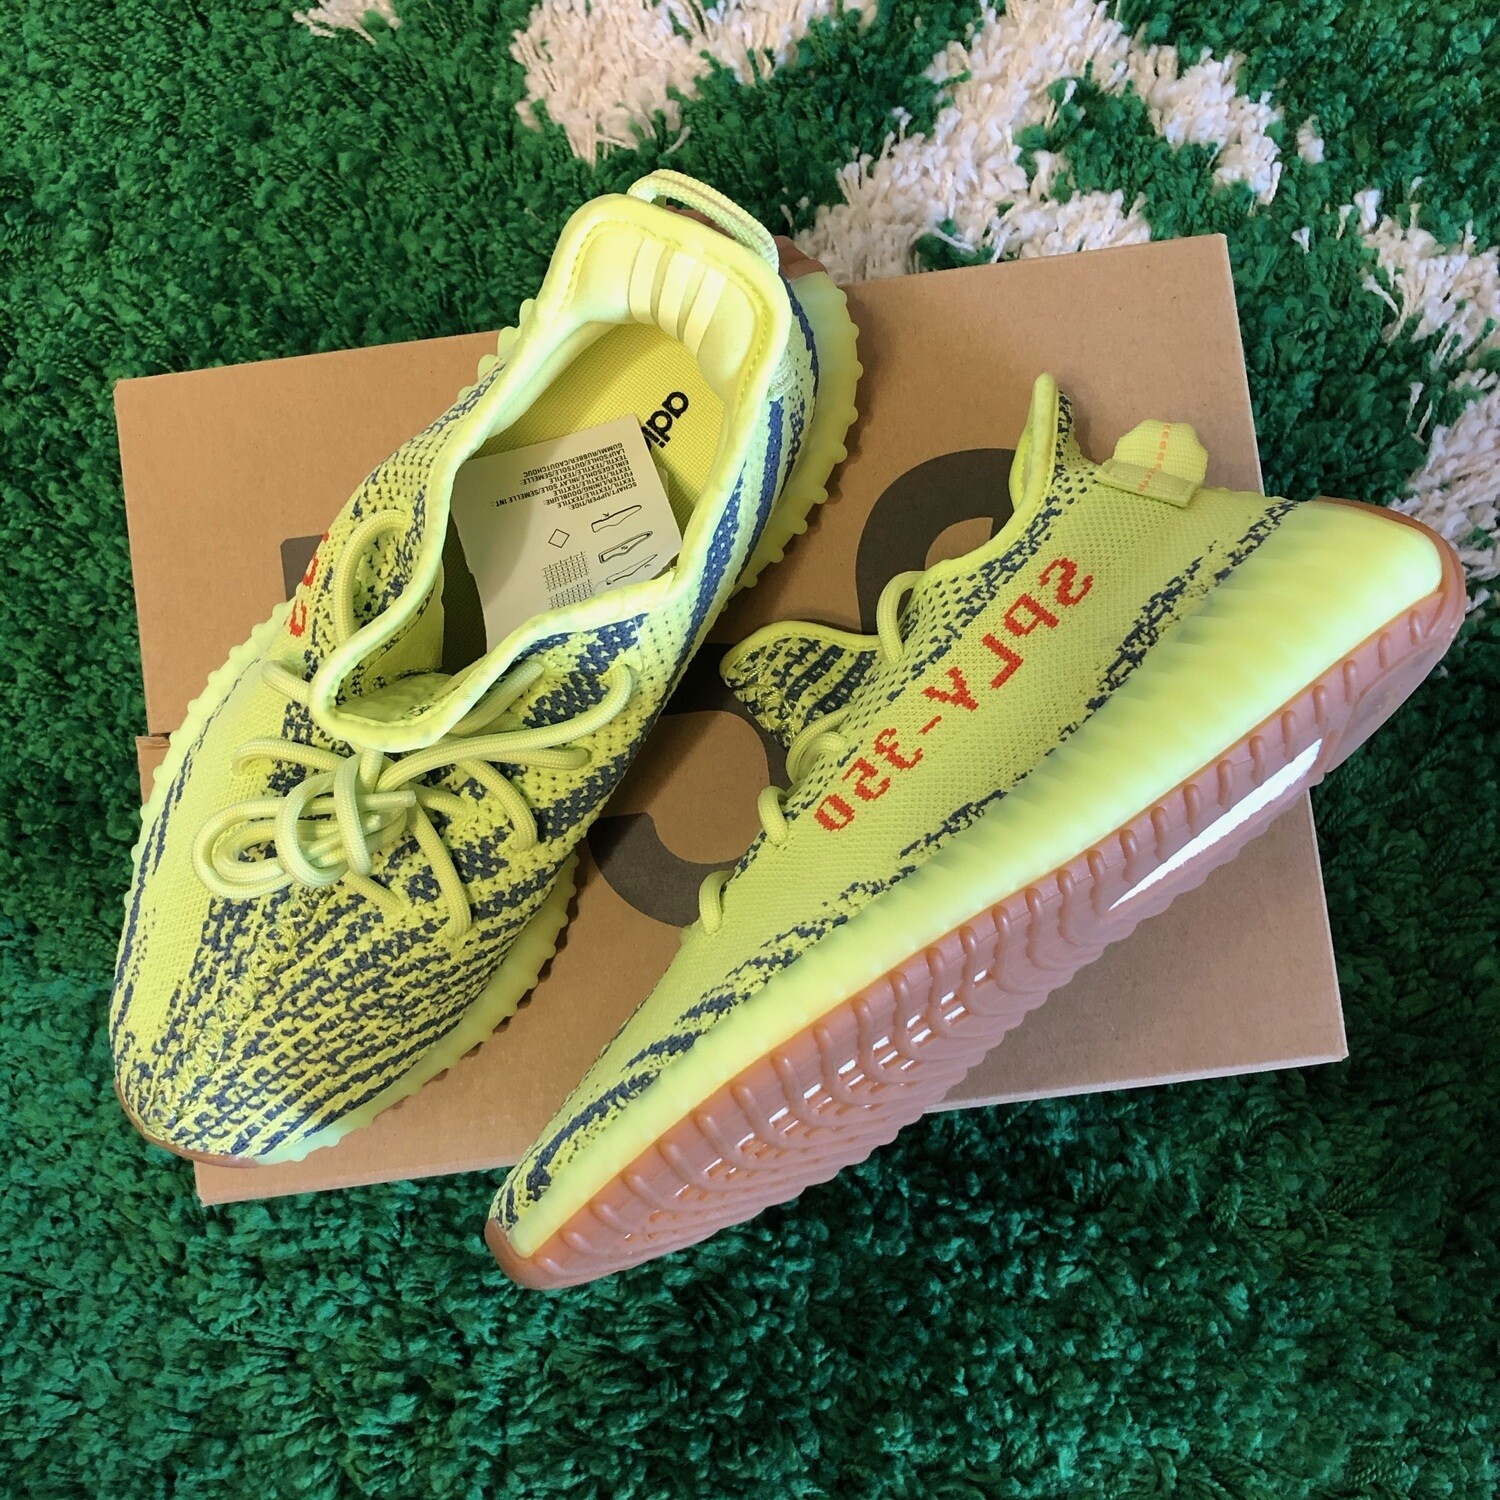 Adidas Yeezy Boost 350 v2 Frozen Yellow Size 8